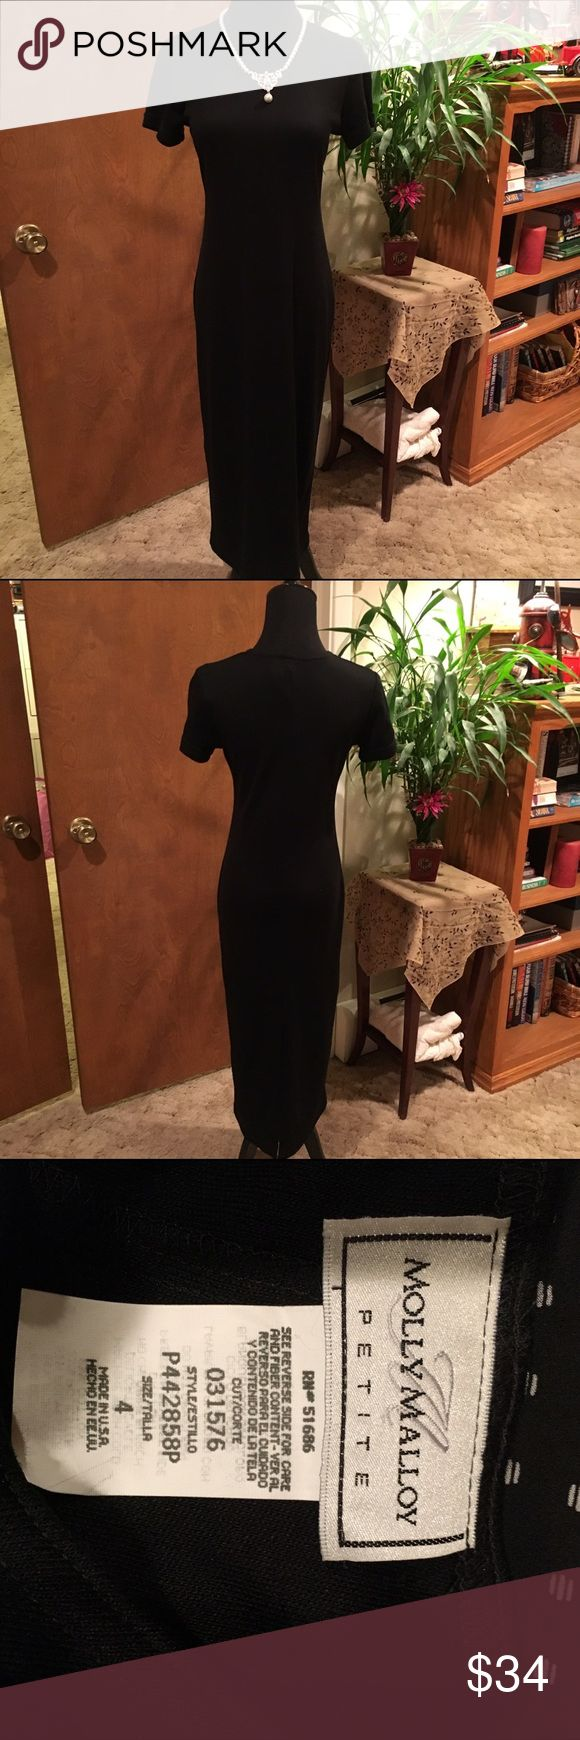 """Molly Malloy Petite dress size 4. This petite dress is considered tea length and a size 4 and is solid black. Measurements are shoulder to arm is 6"""", bust laid flat is 16"""", and shoulder to hem is 45"""". Molly Malloy Dresses Maxi"""